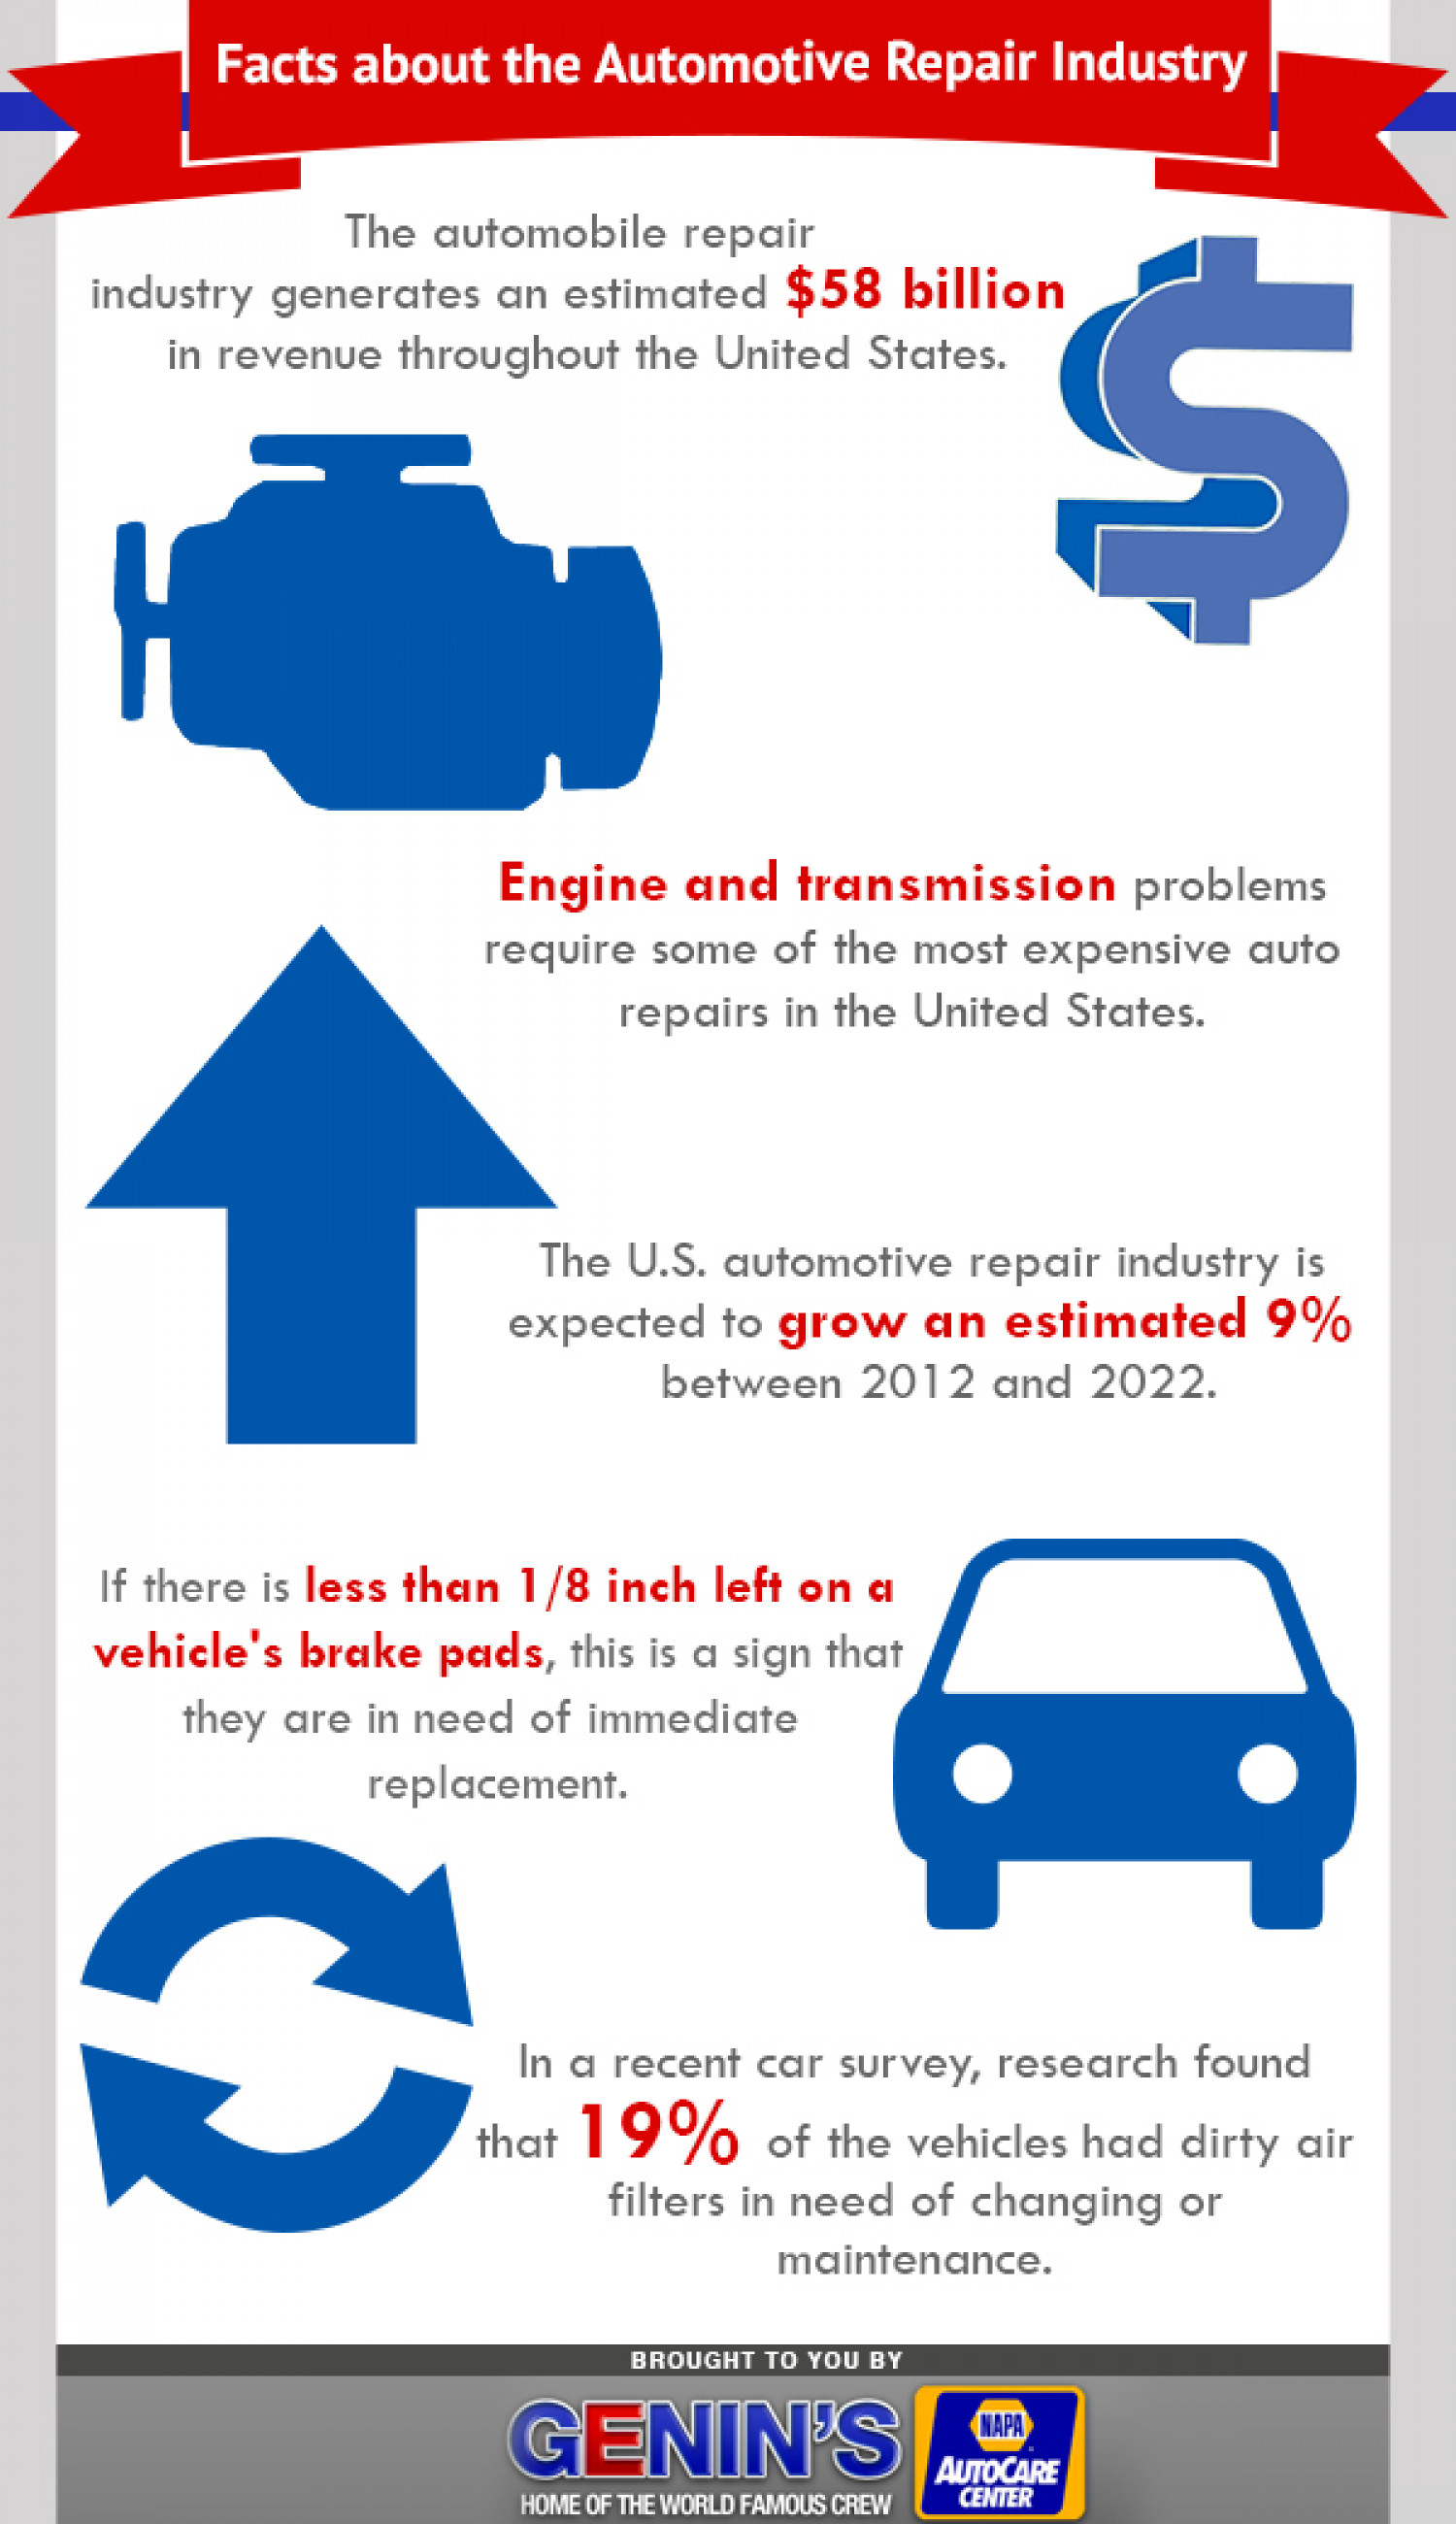 facts-about-the-automotive-repair-indust